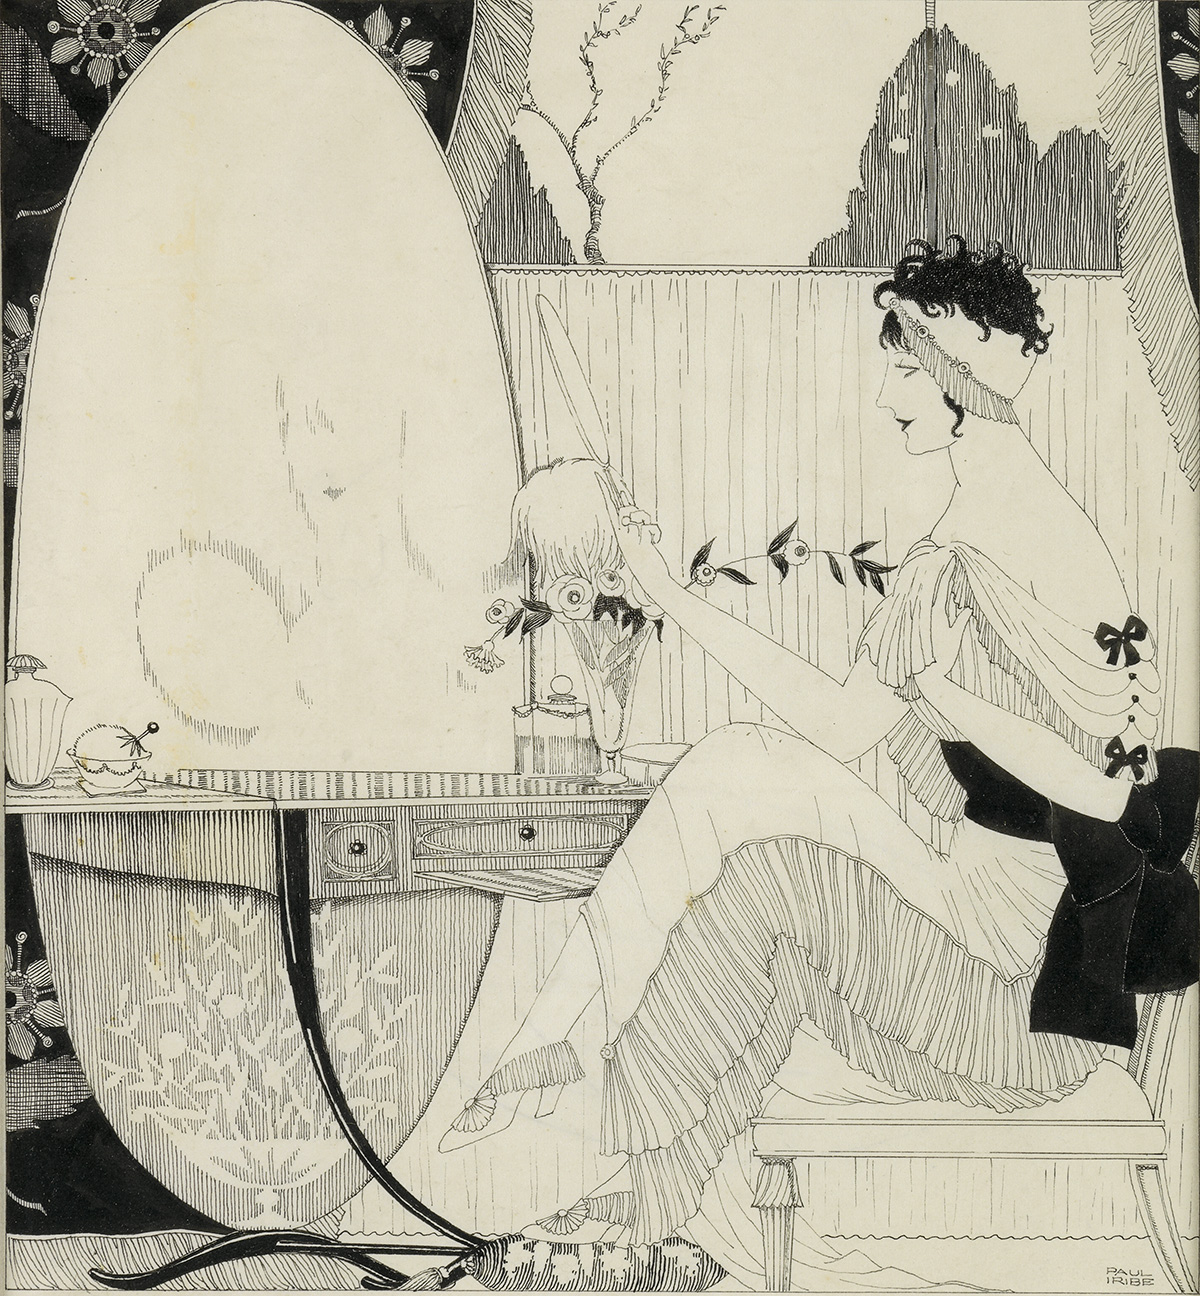 FASHION PAUL IRIBE. The Audacious Note of Modernism in the Boudoir.